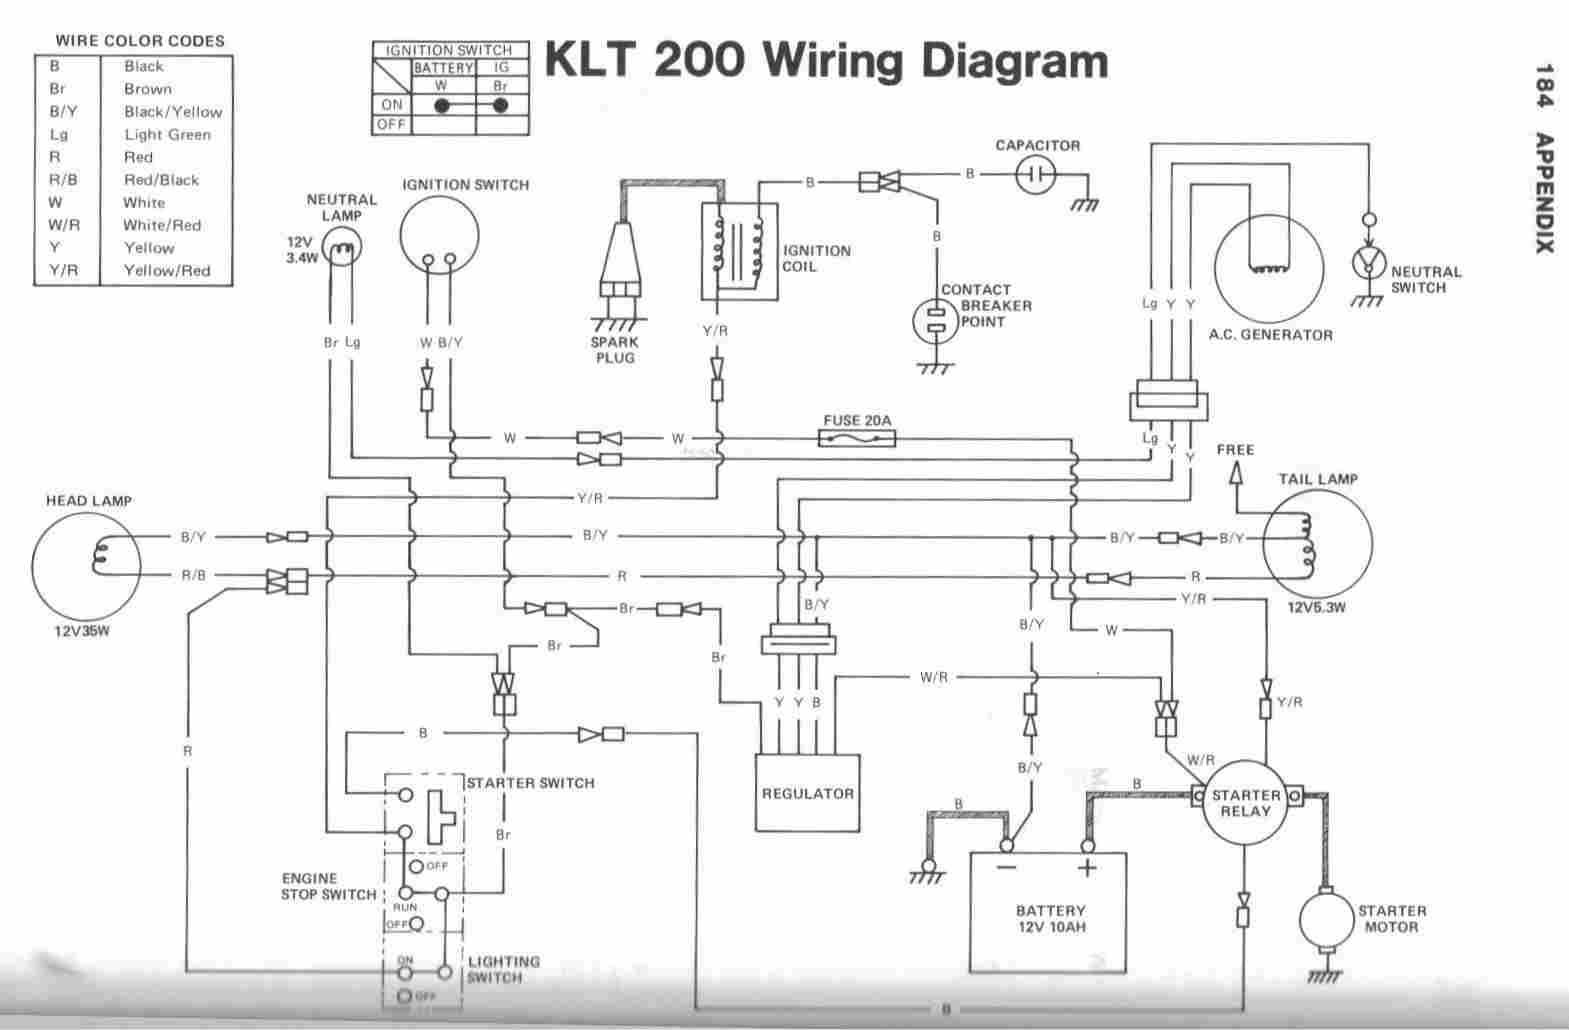 Www Electrical Wiring Diagram Com Golden Schematic Toyota 86120 0c080 Residential Diagrams Pdf Easy Routing